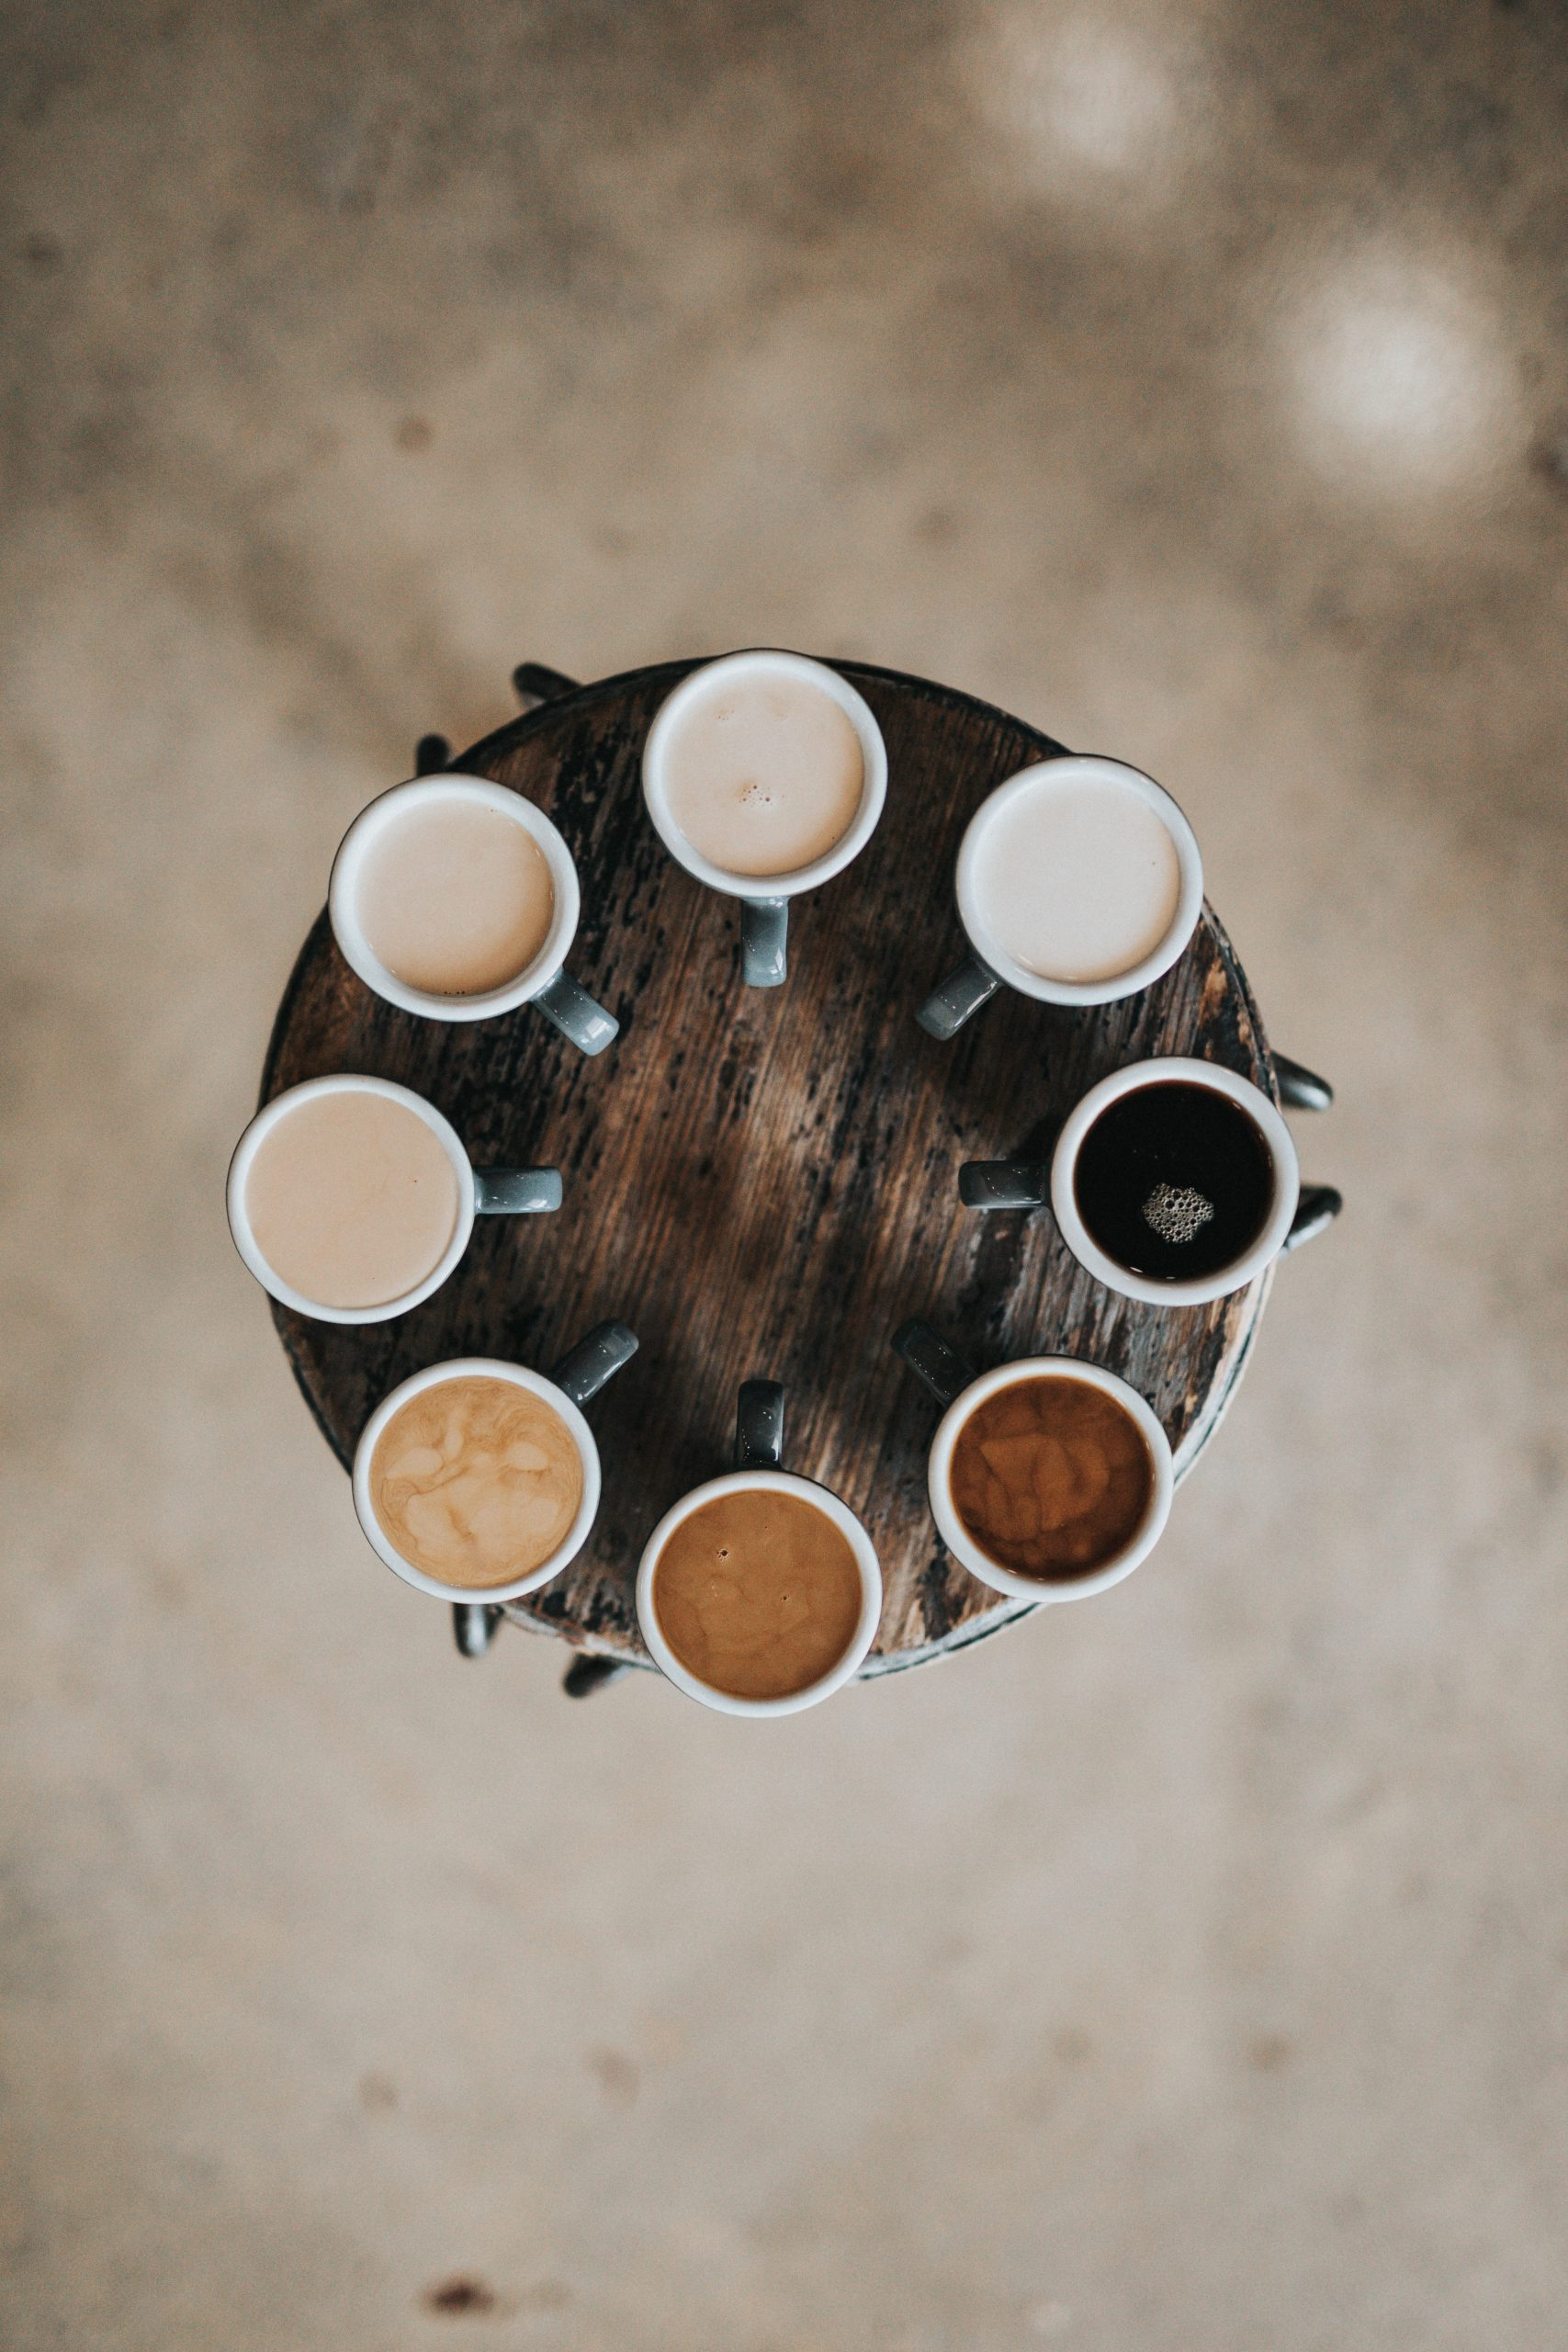 Tips for Choosing Your Coffee